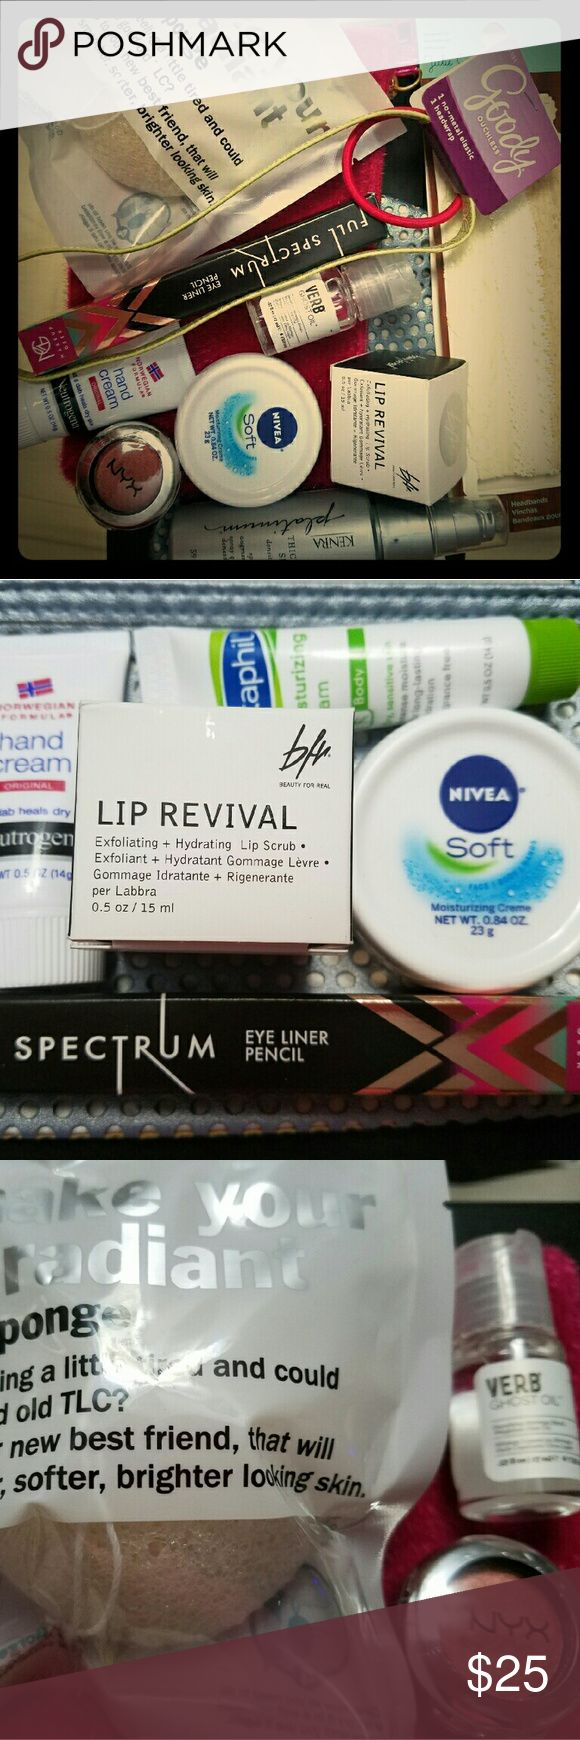 MISC MAKEUP BAG mix up of makeup,hair and face products. All new none swatched  or tested. Included is mug espresso eye liner ($9) beauty for real lip scrub ($14) gorge I'll make you radiant sponge  ($16) nyx single shadow in fire ball ($6) goody head wrap and elastic, Kenya thickening spray. Huge value. Absolutely no trading or PayPal so please don't ask. Please ask questions.  I'll work with anyone. Don't want people unhappy. I have no control over shipping cost. Fast shipper (winter…